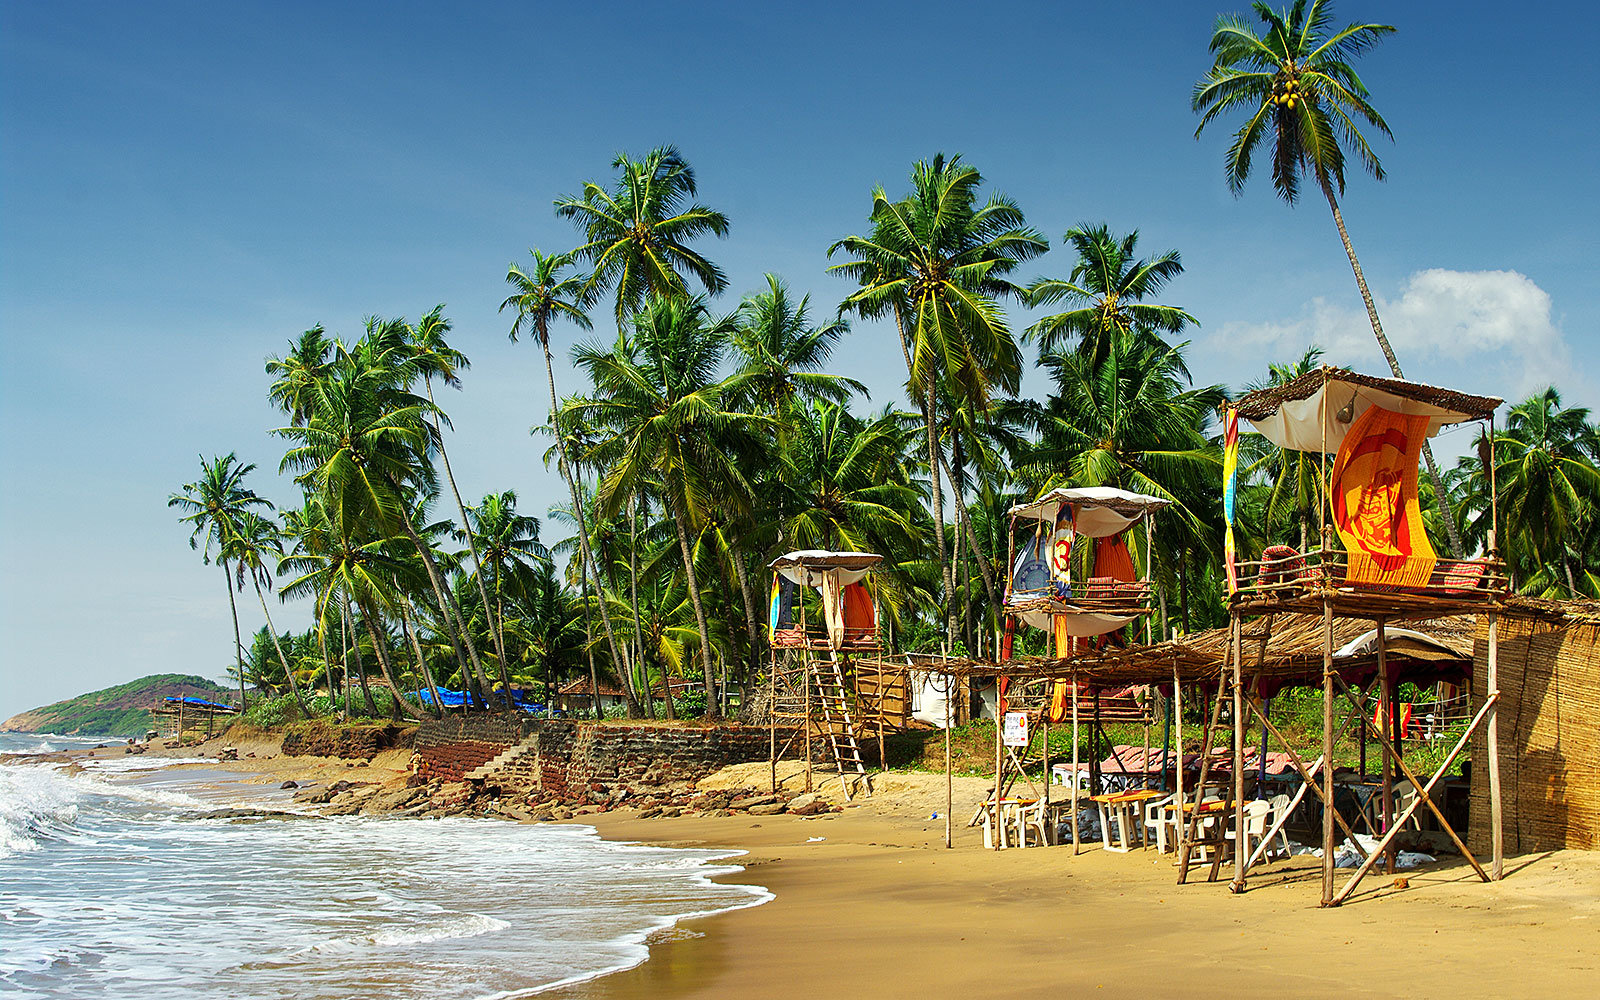 Get your feet wet in Goa